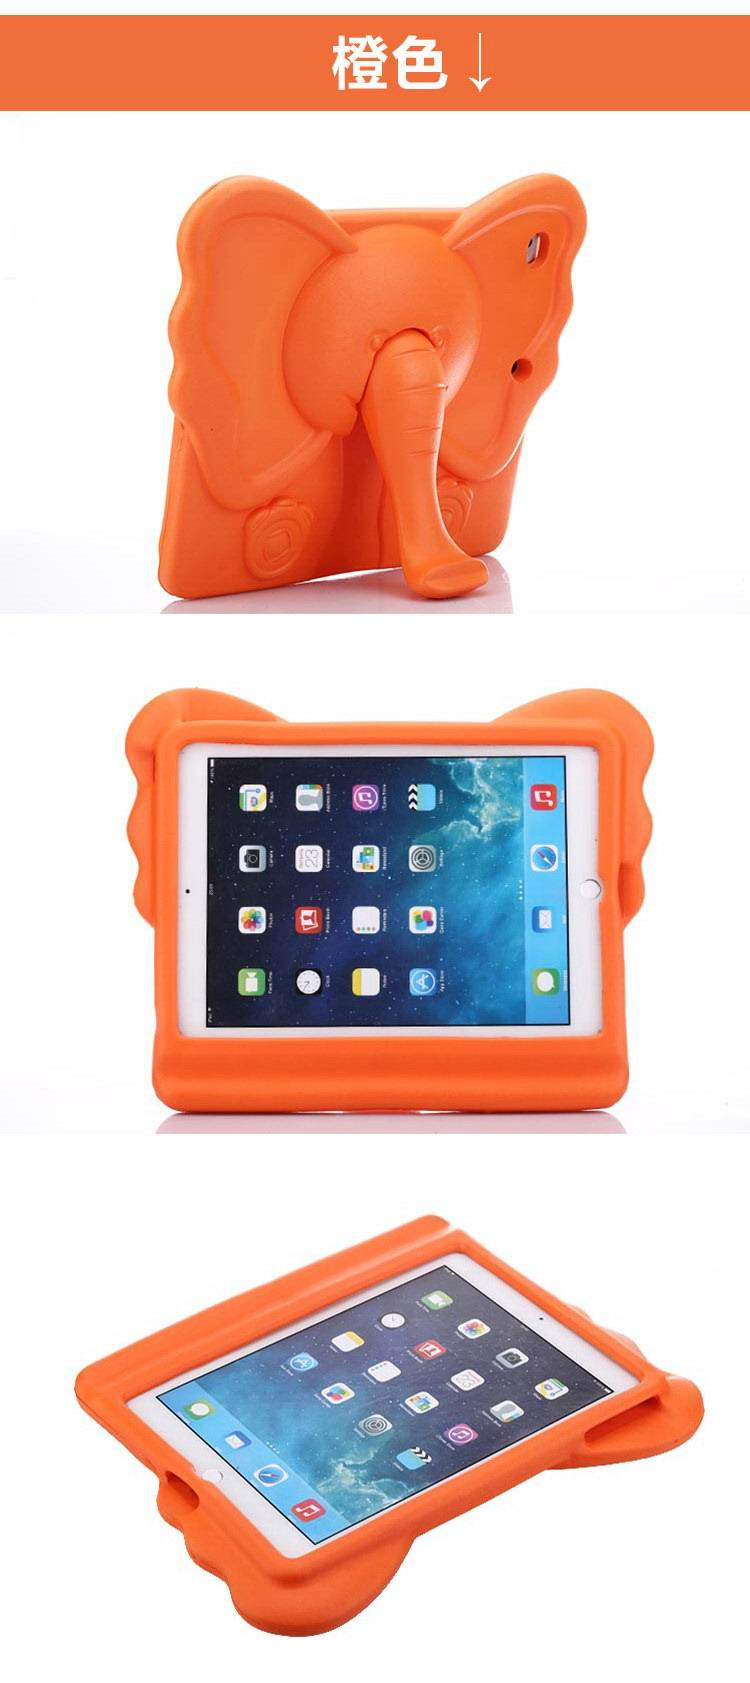 cover with an elephant for children for apple ipad 2 ipad 3 ipad 4 apple ipad mini 1 ipad mini 2 ipad mini 3 ipad mini 4 apple ipad air 1 ipad air 2 0